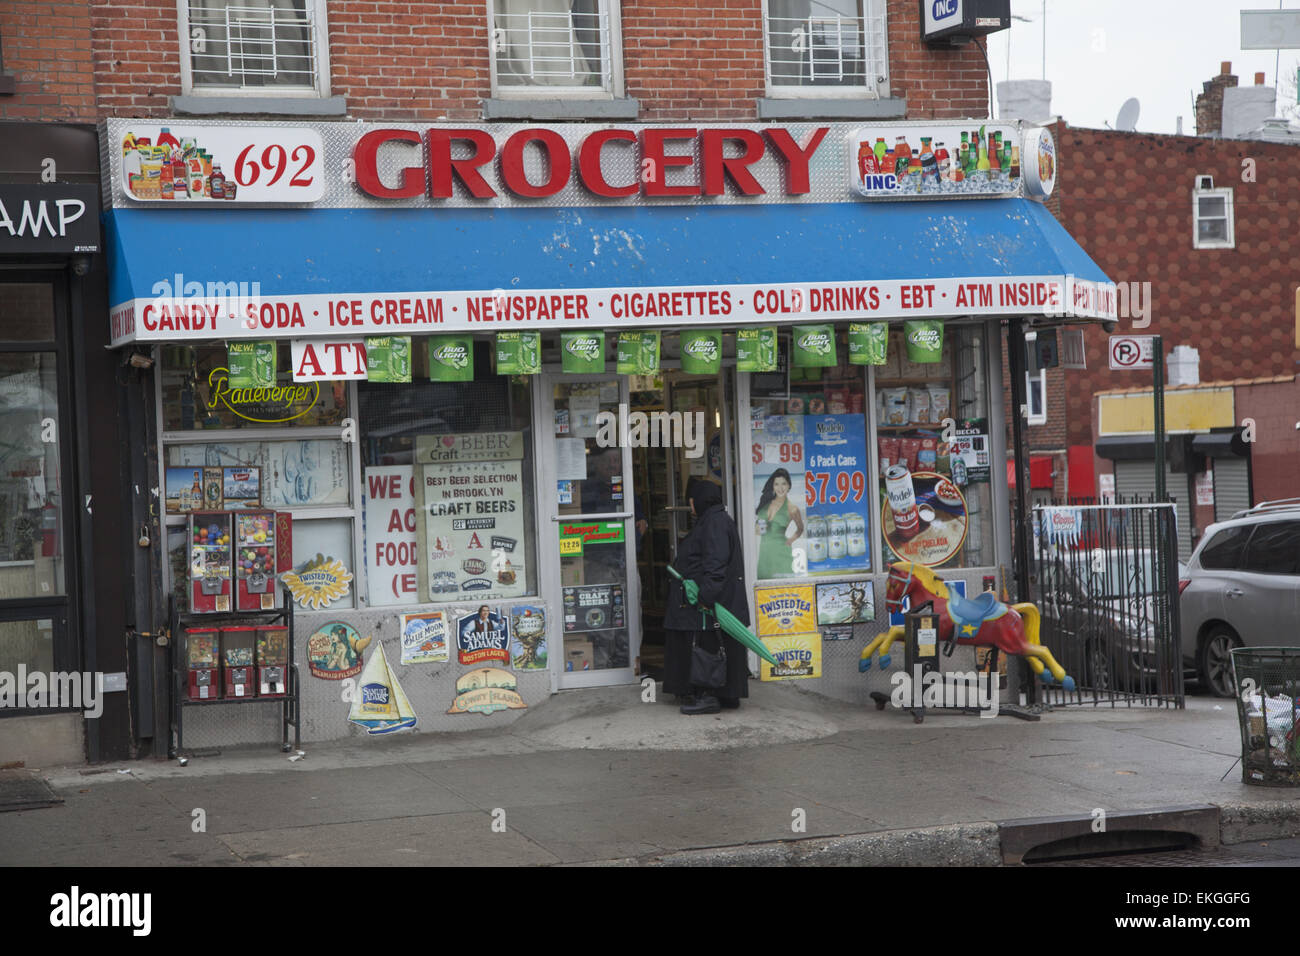 bodega grocery store along 4th avenue in brooklyn ny stock photo royalty free image 80884148. Black Bedroom Furniture Sets. Home Design Ideas